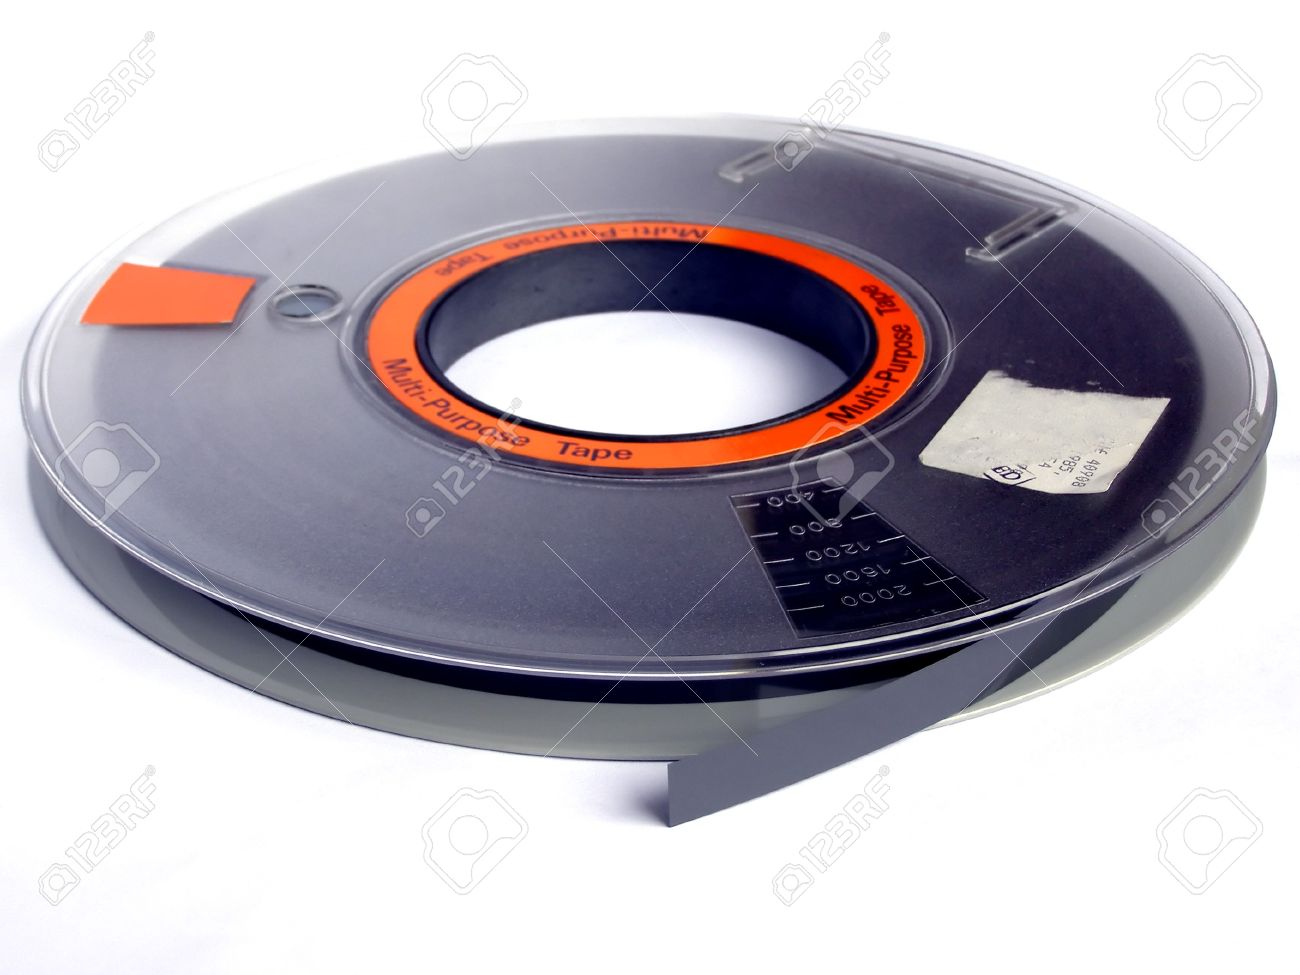 Magnetic tape reel for computer data storage Stock Photo - 4224403